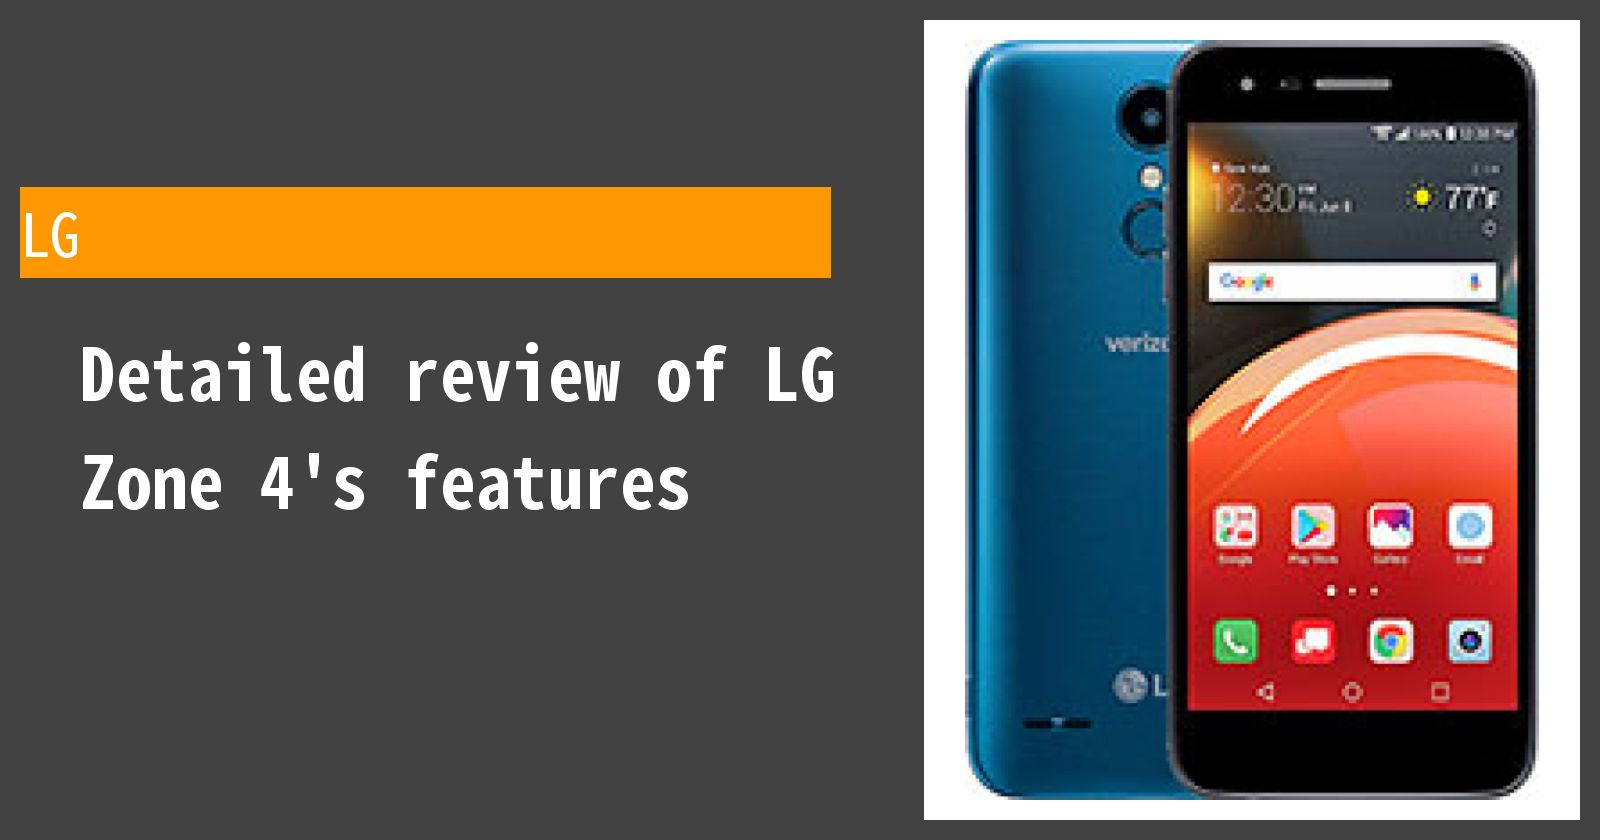 Detailed review of LG Zone 4's features